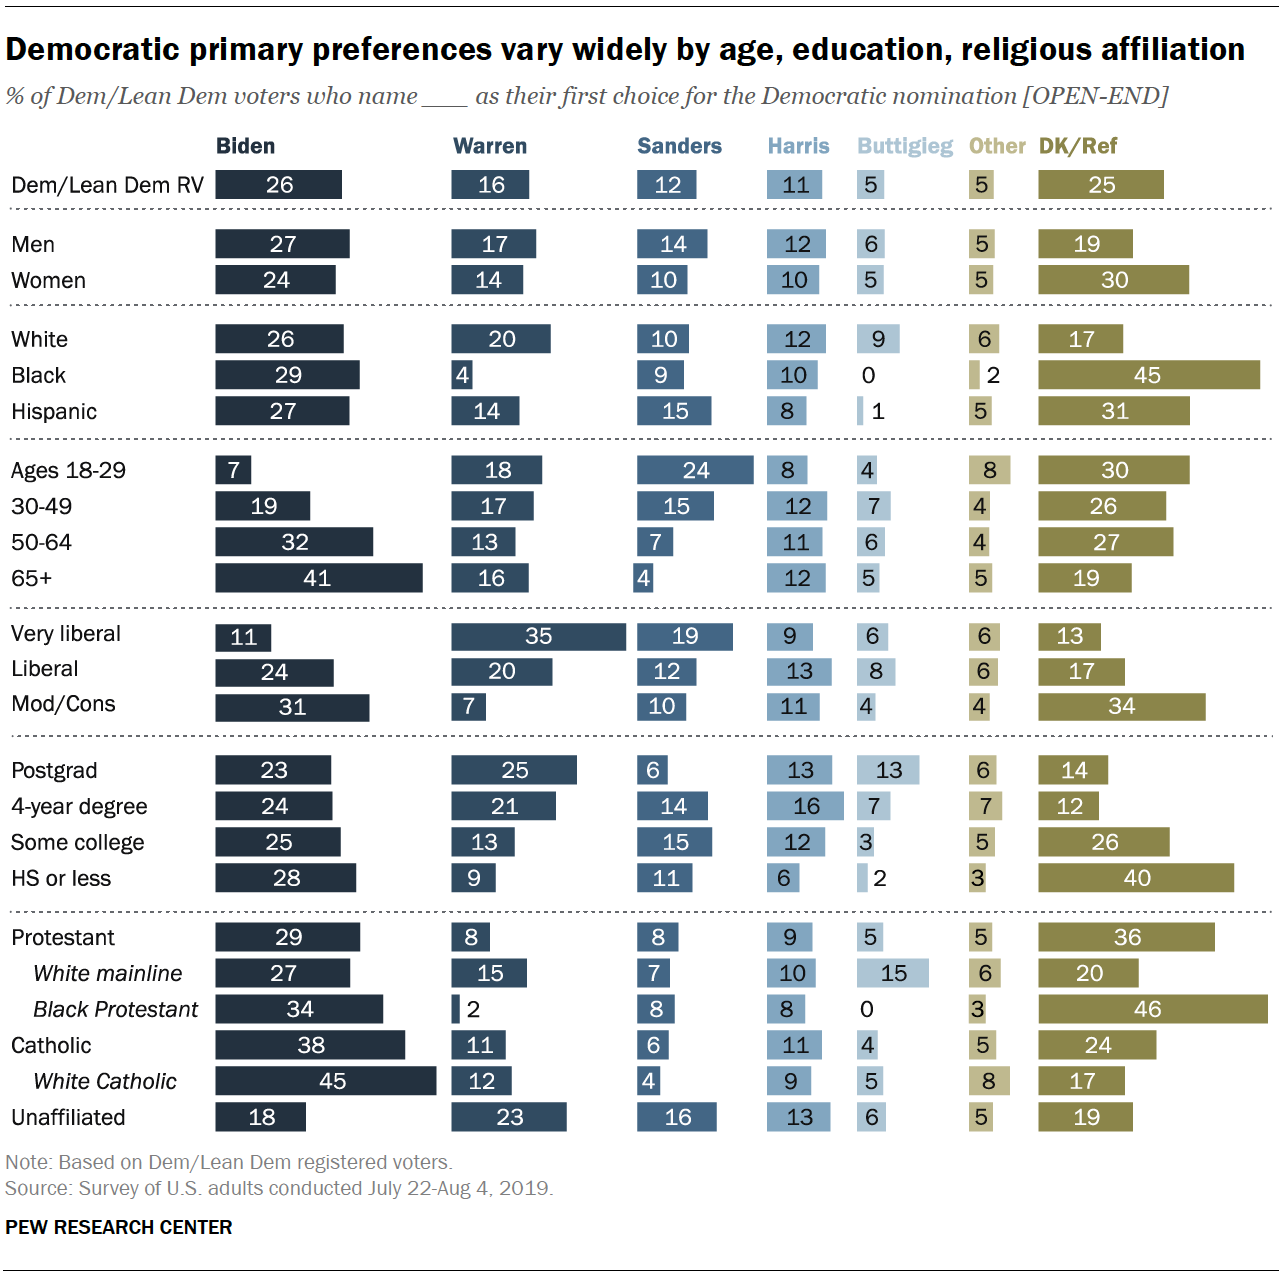 Democratic primary preferences vary widely by age, education, and religious affiliation